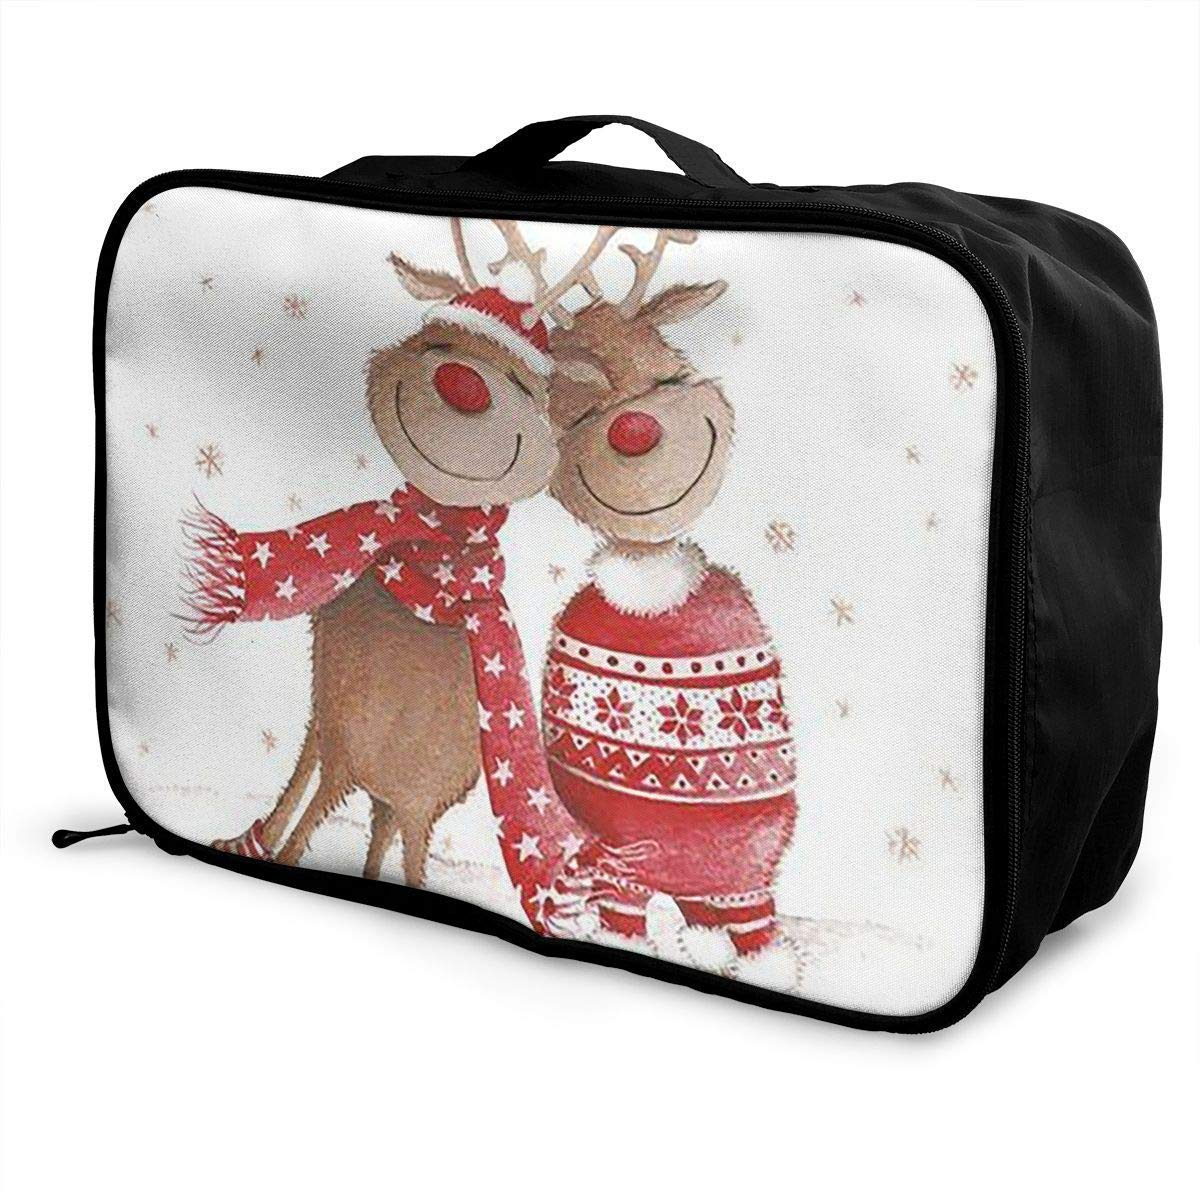 Portable Luggage Duffel Bag Merry Christmas Reindeer Travel Bags Carry-on in Trolley Handle JTRVW Luggage Bags for Travel